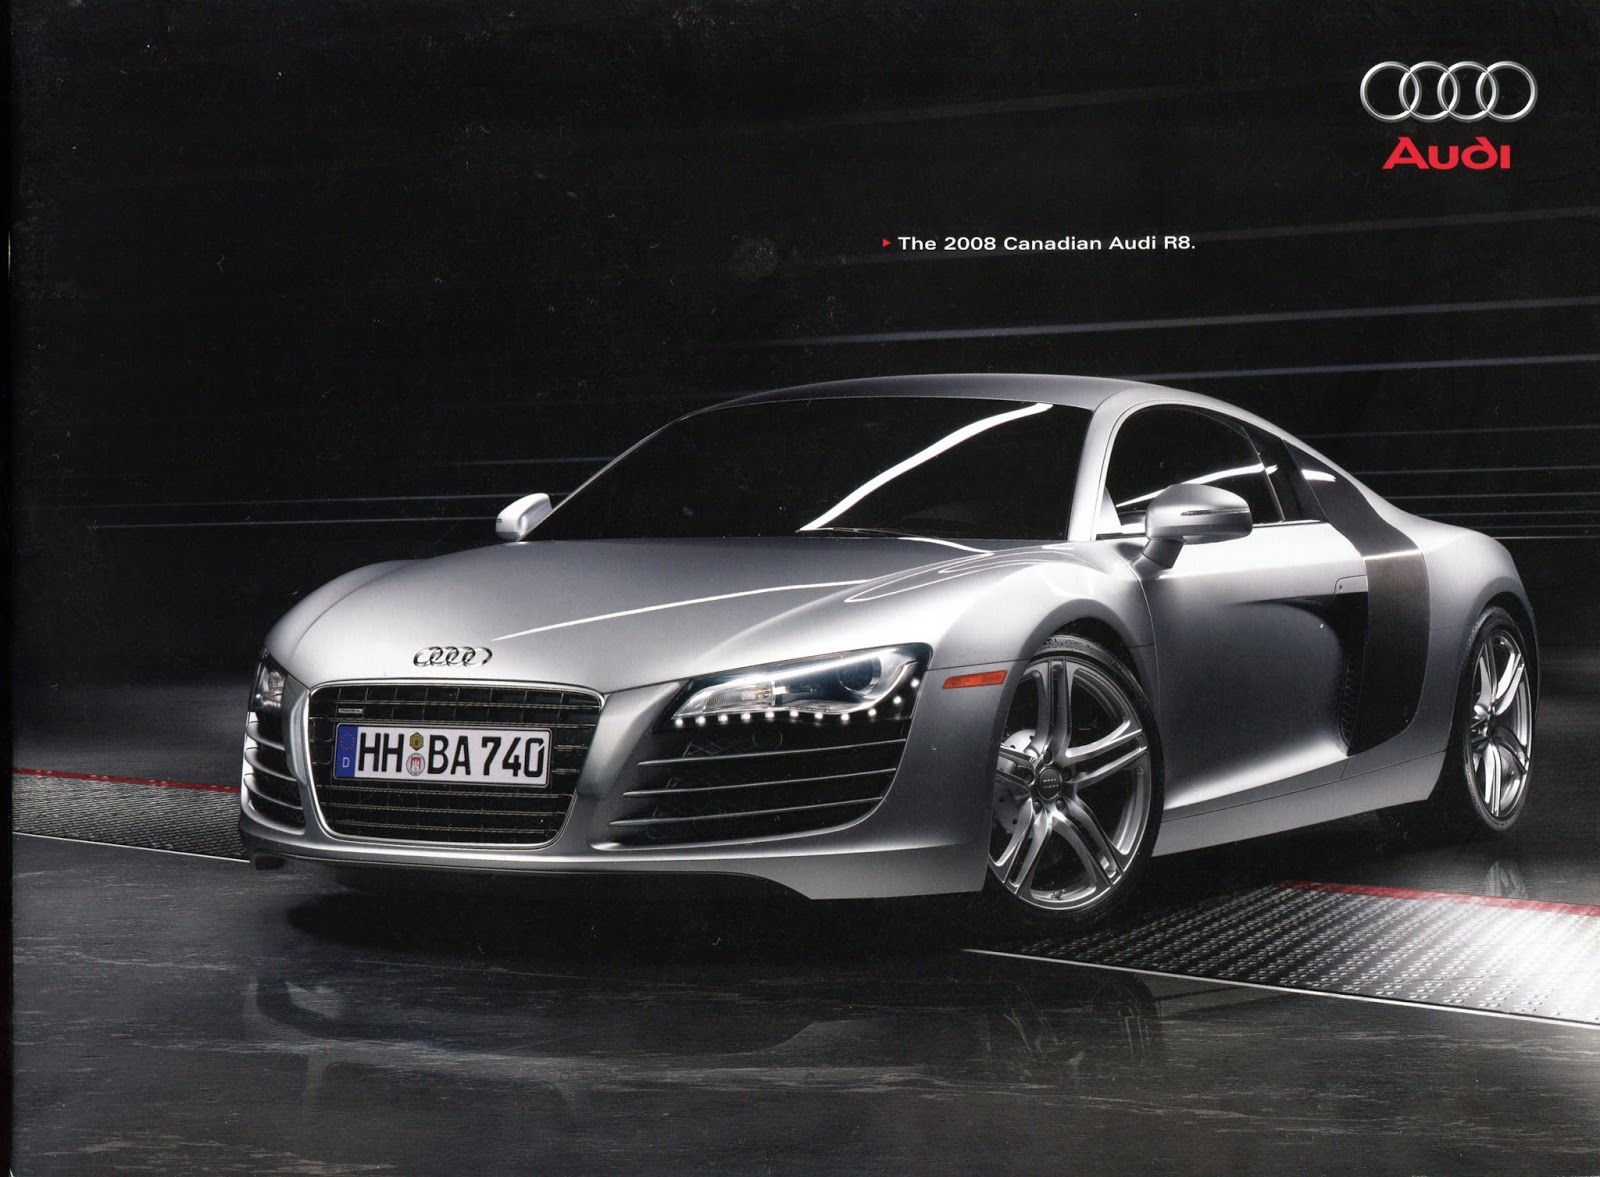 This Is What You Got If You Managed To Shake One Loose From A Canadian Audi  Dealer, A Nice But Slim 8 Page Job Showing 3 Color Pics And A Bunch Of  Small ...